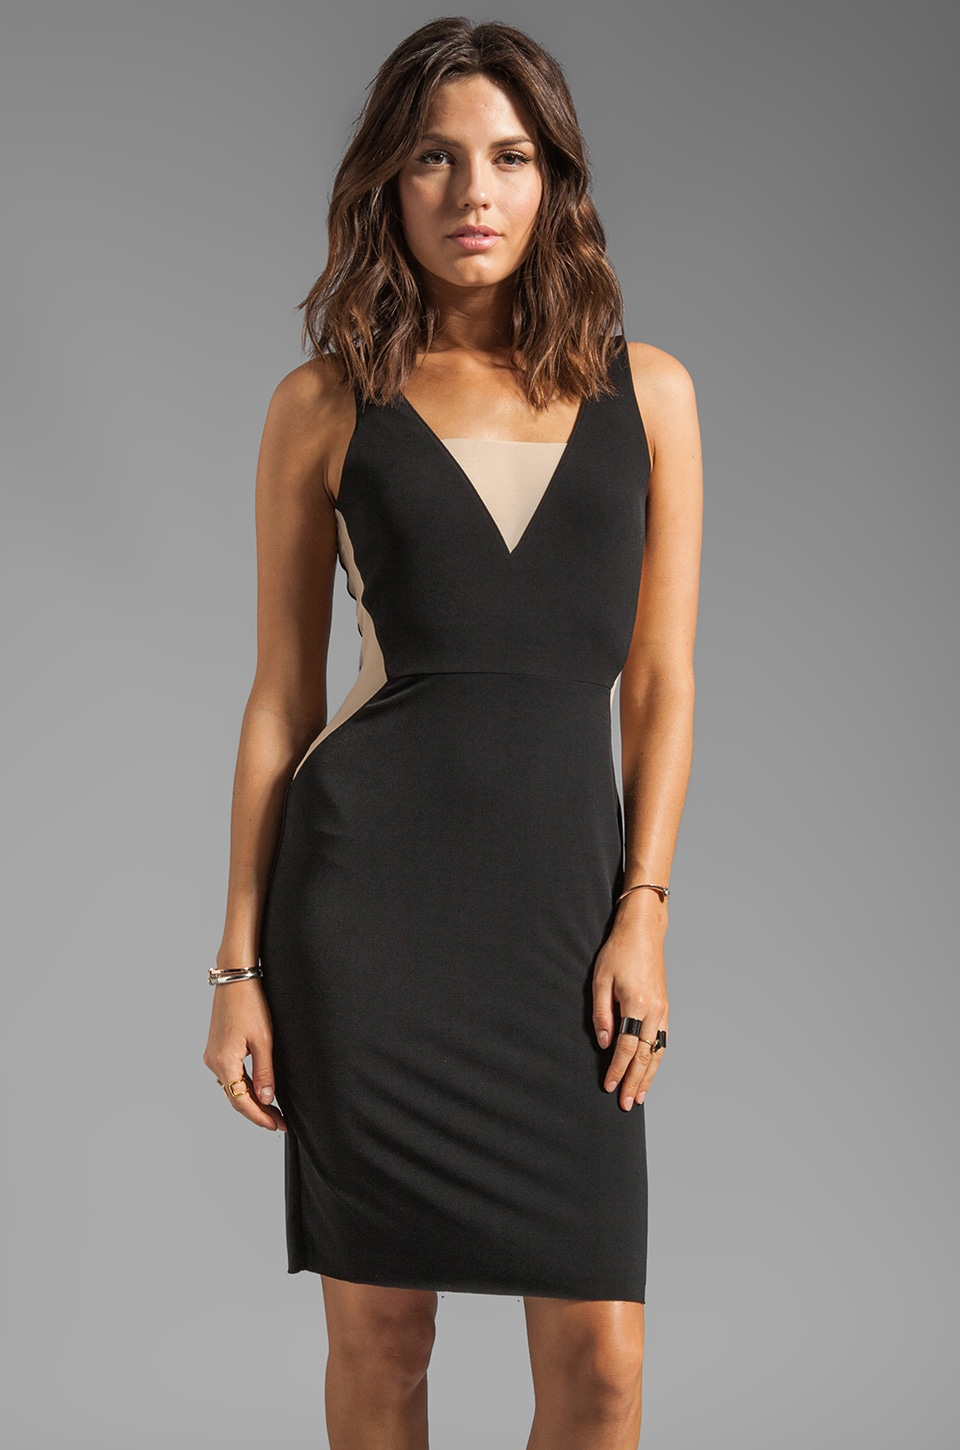 Graham & Spencer Stretch Jersey Mesh Tank Dress in Black